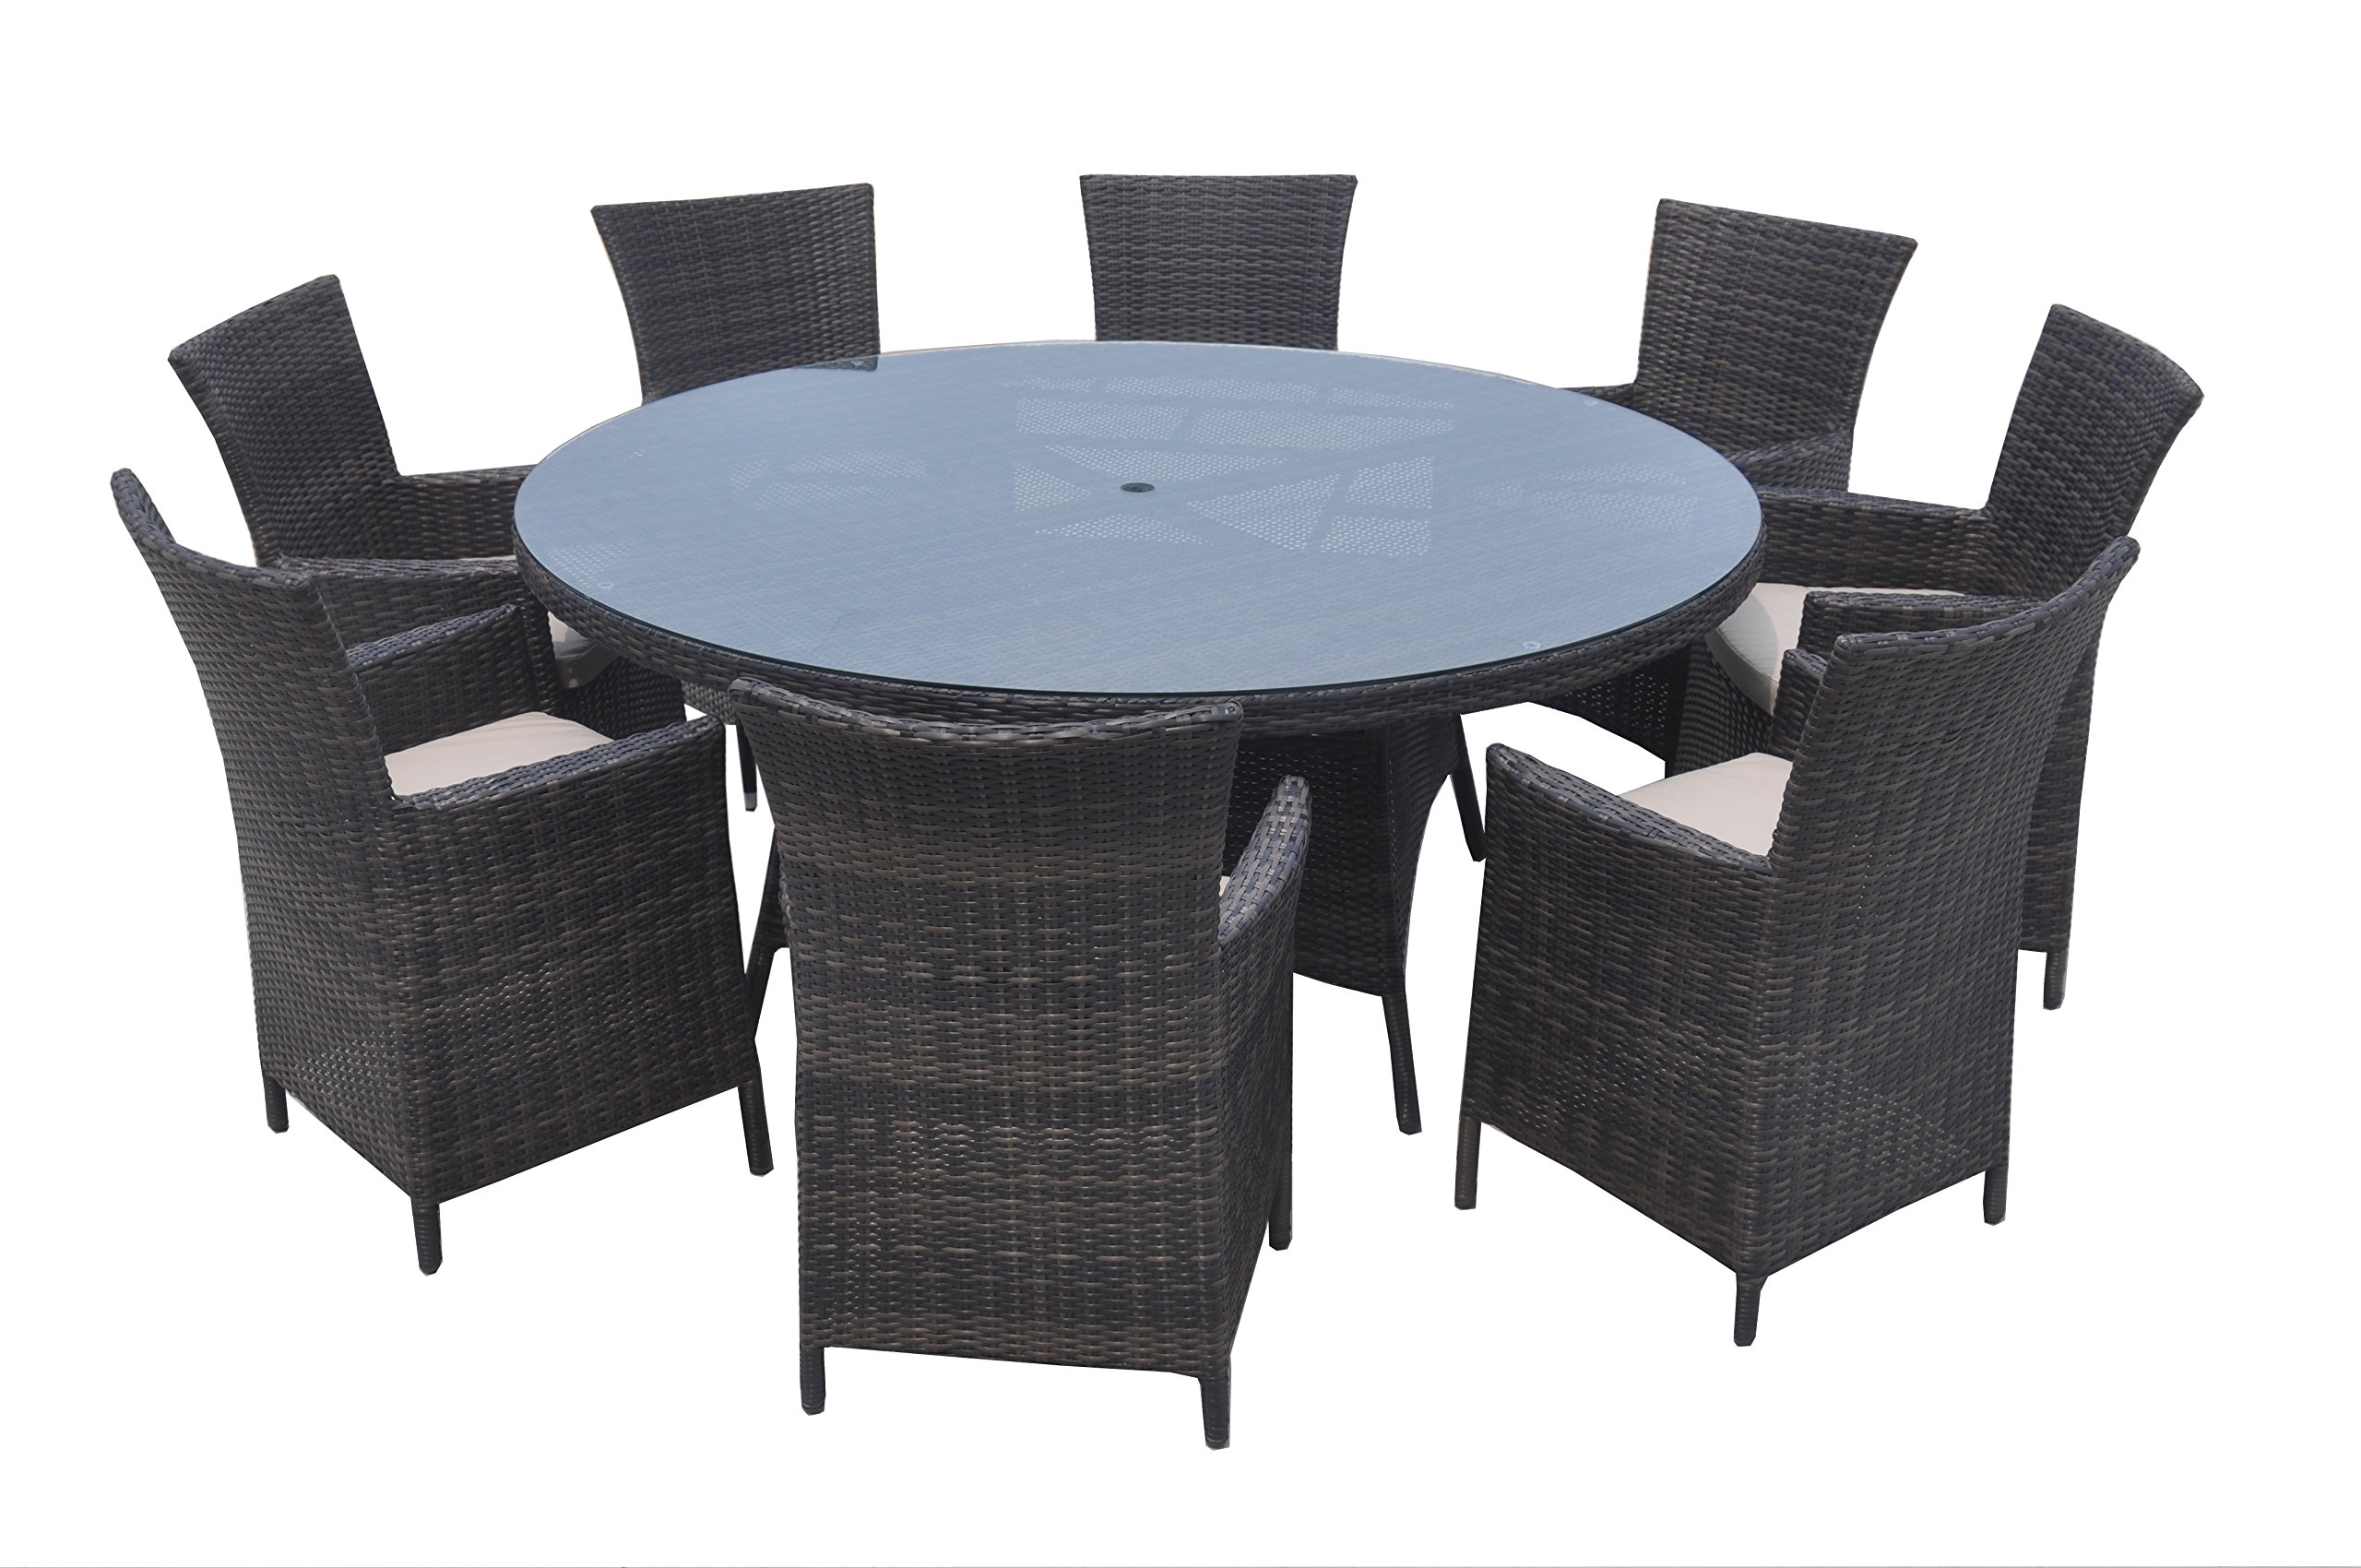 9 Piece Wicker Dining Sets, Patio Round Dining Set - Taupe - Aluminum frame: resist warping, twisting, and rust; plus they're lightweight and easily portable Polyethylene rattan: designed to look like beautiful hand woven wicker, these frame exteriors also resist UV and moisture damage Polyester cushions: 5cm thick, foam-filled for comfort, resistant to fade and moisture - patio-furniture, dining-sets-patio-funiture, patio - 81bnC GkQsL -